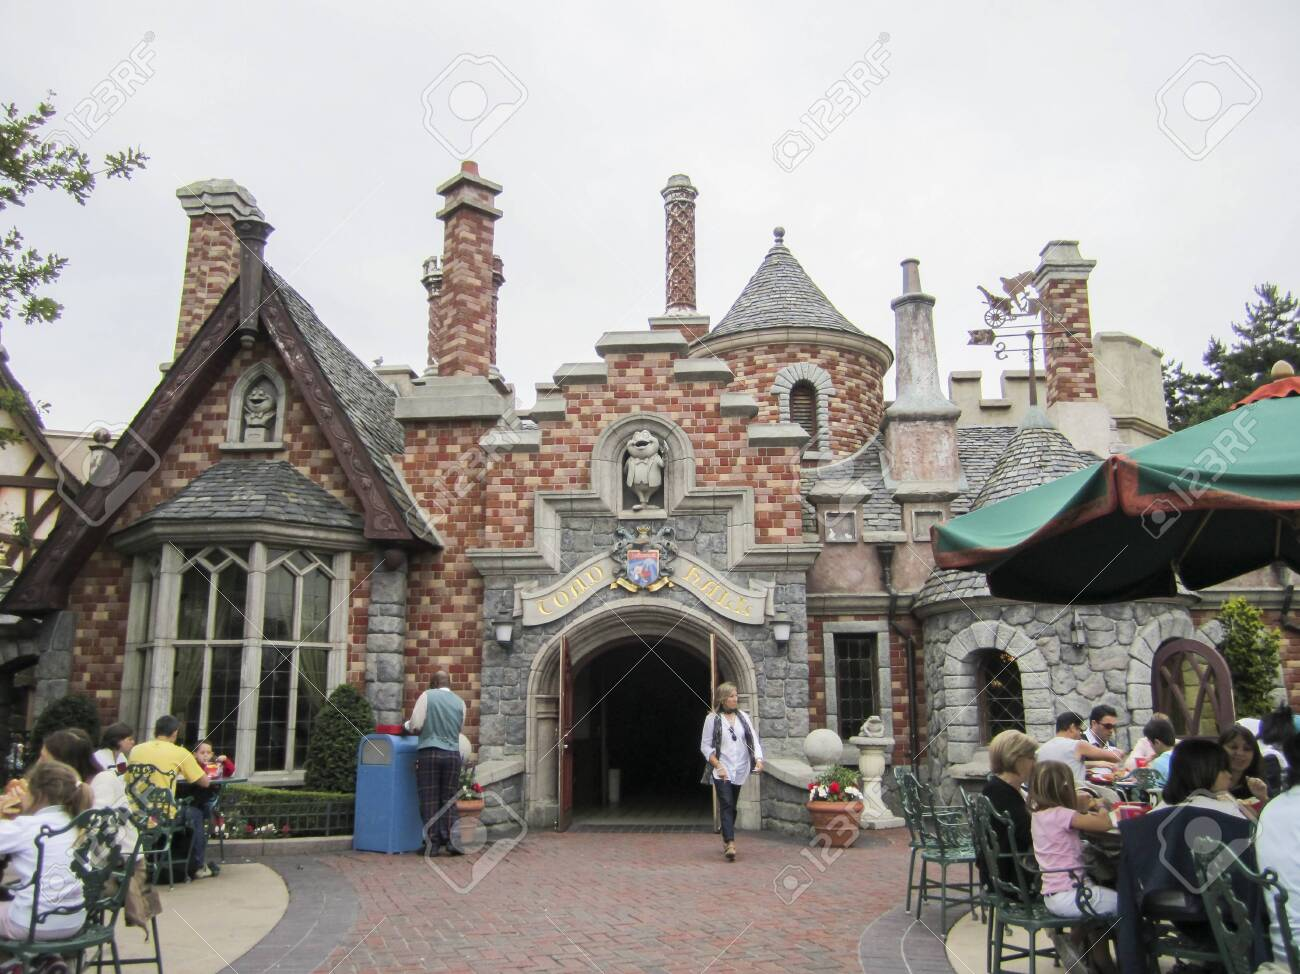 Visit the theme park of Disneyland Paris, composed of its different attractions, themed corners and shops or shows. - 132988192